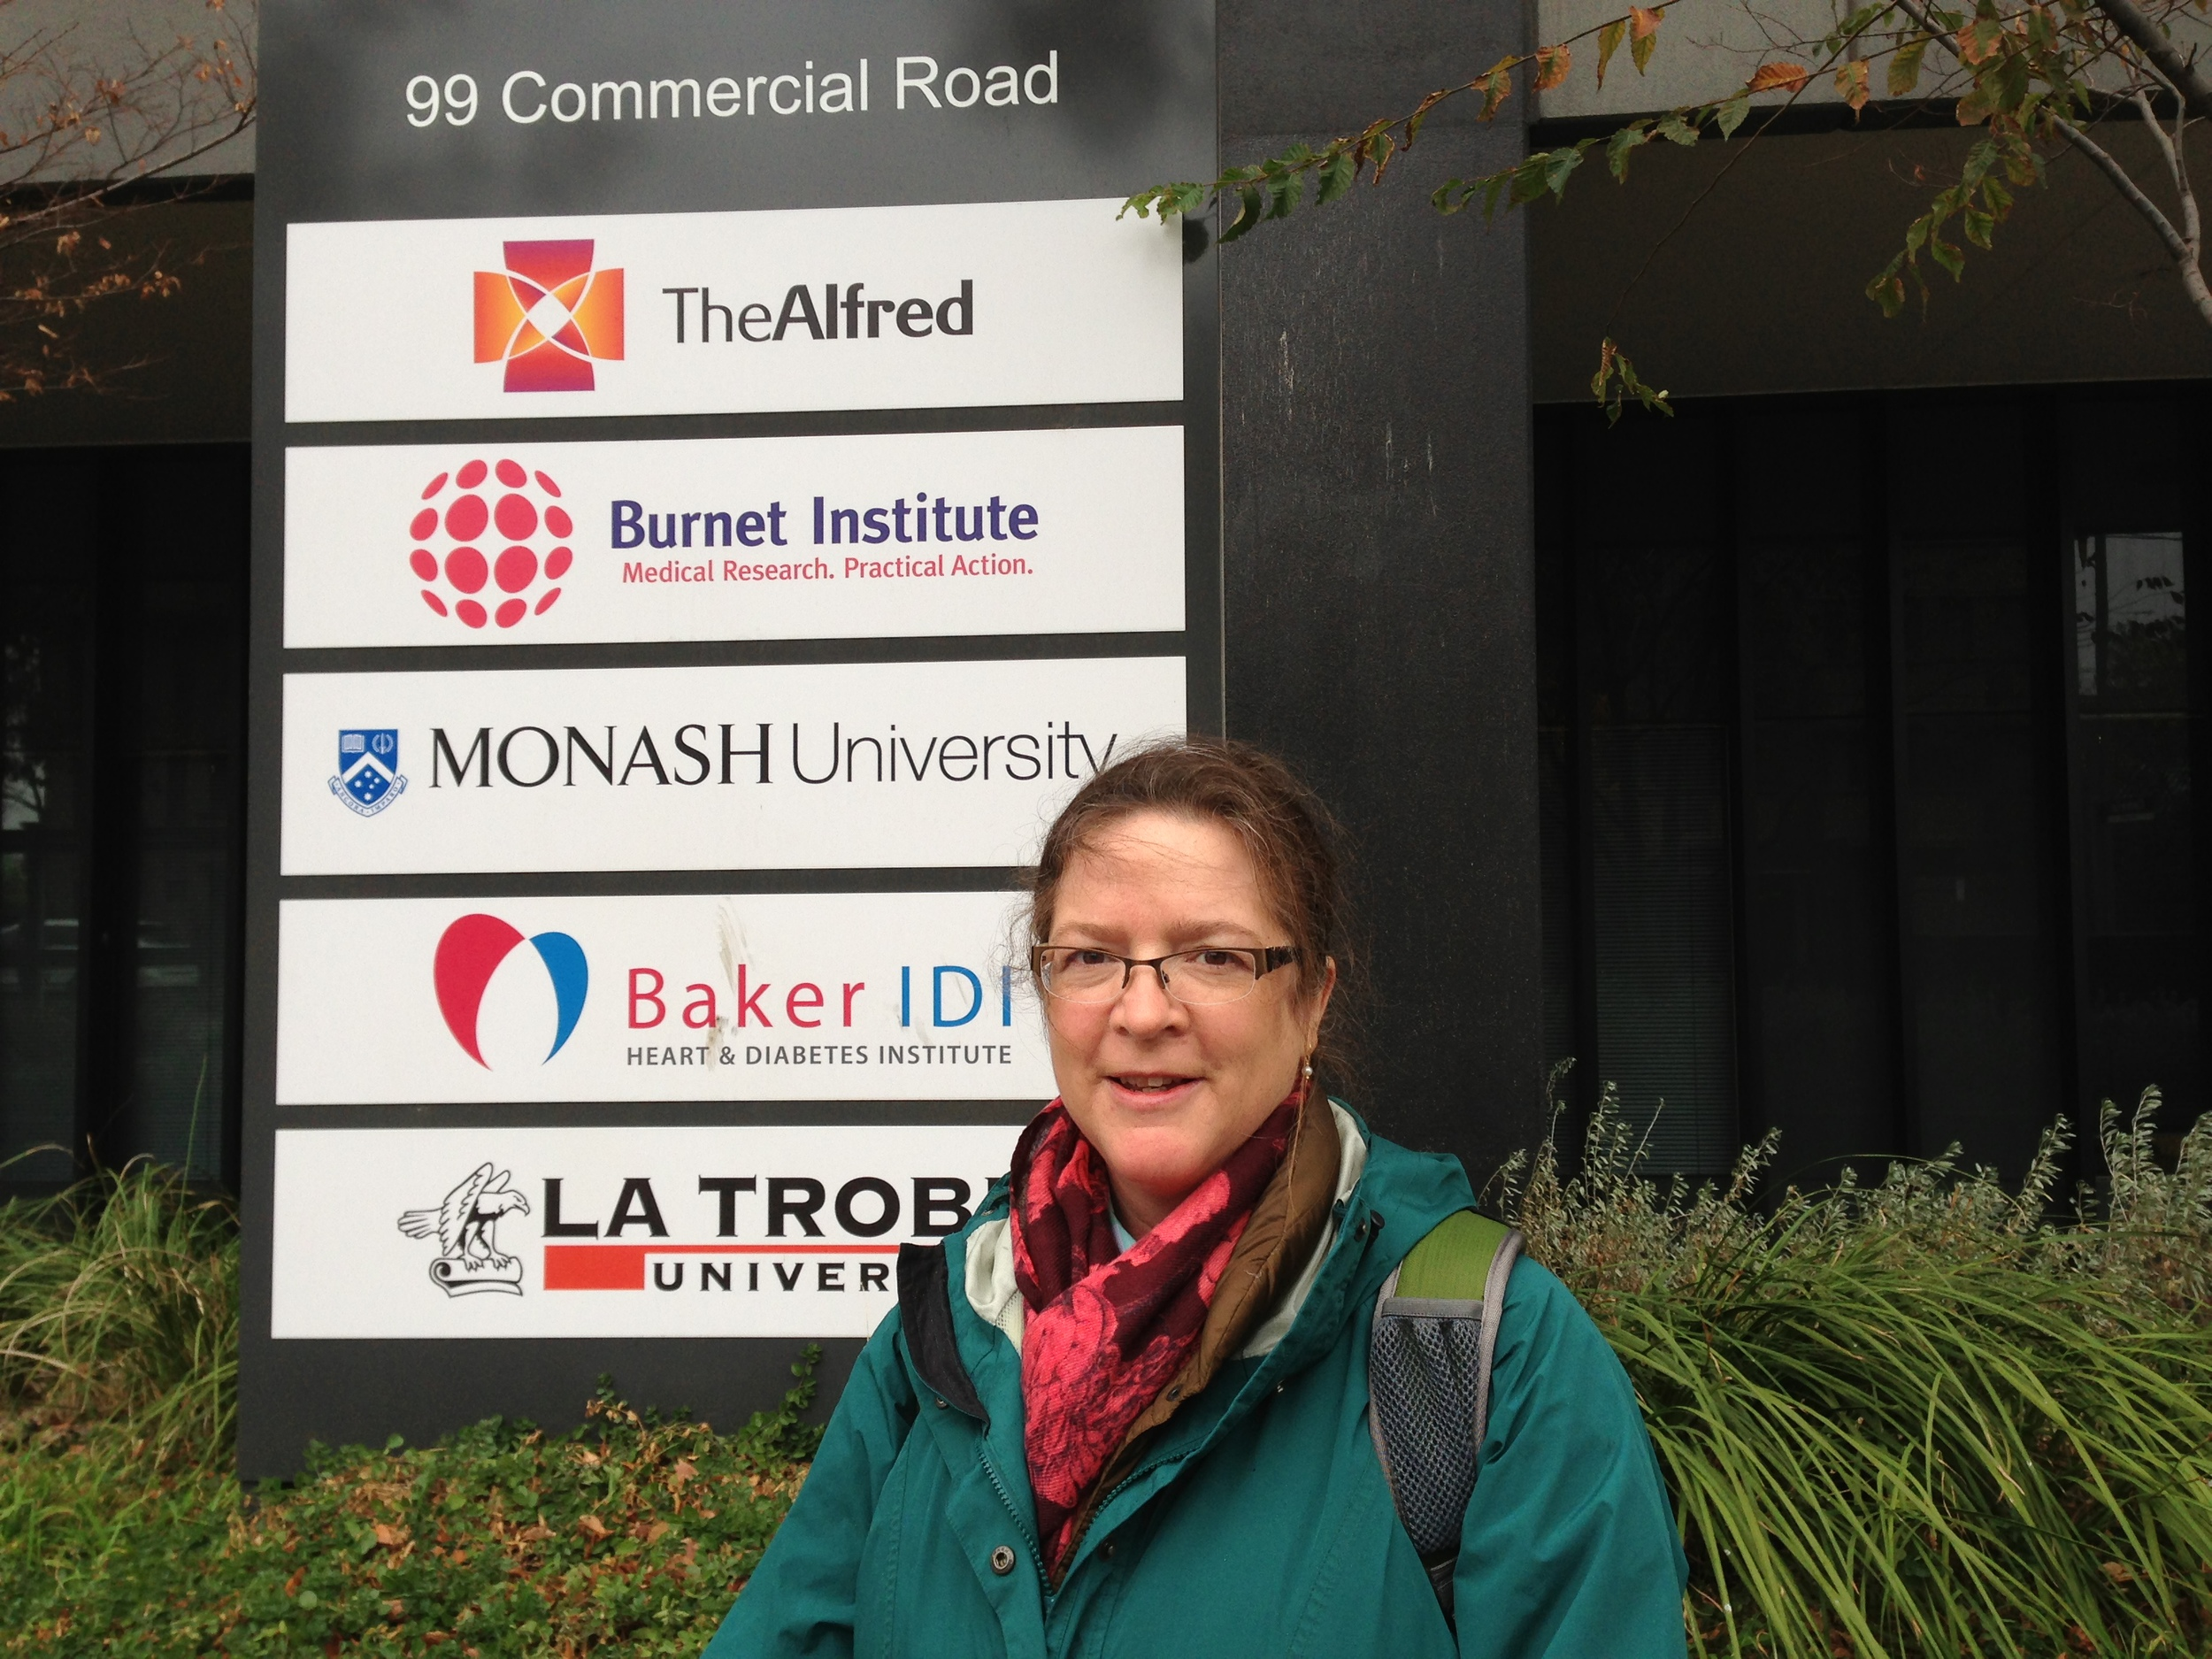 Beyond thrilled to be at Monash University in Australia, 2013.